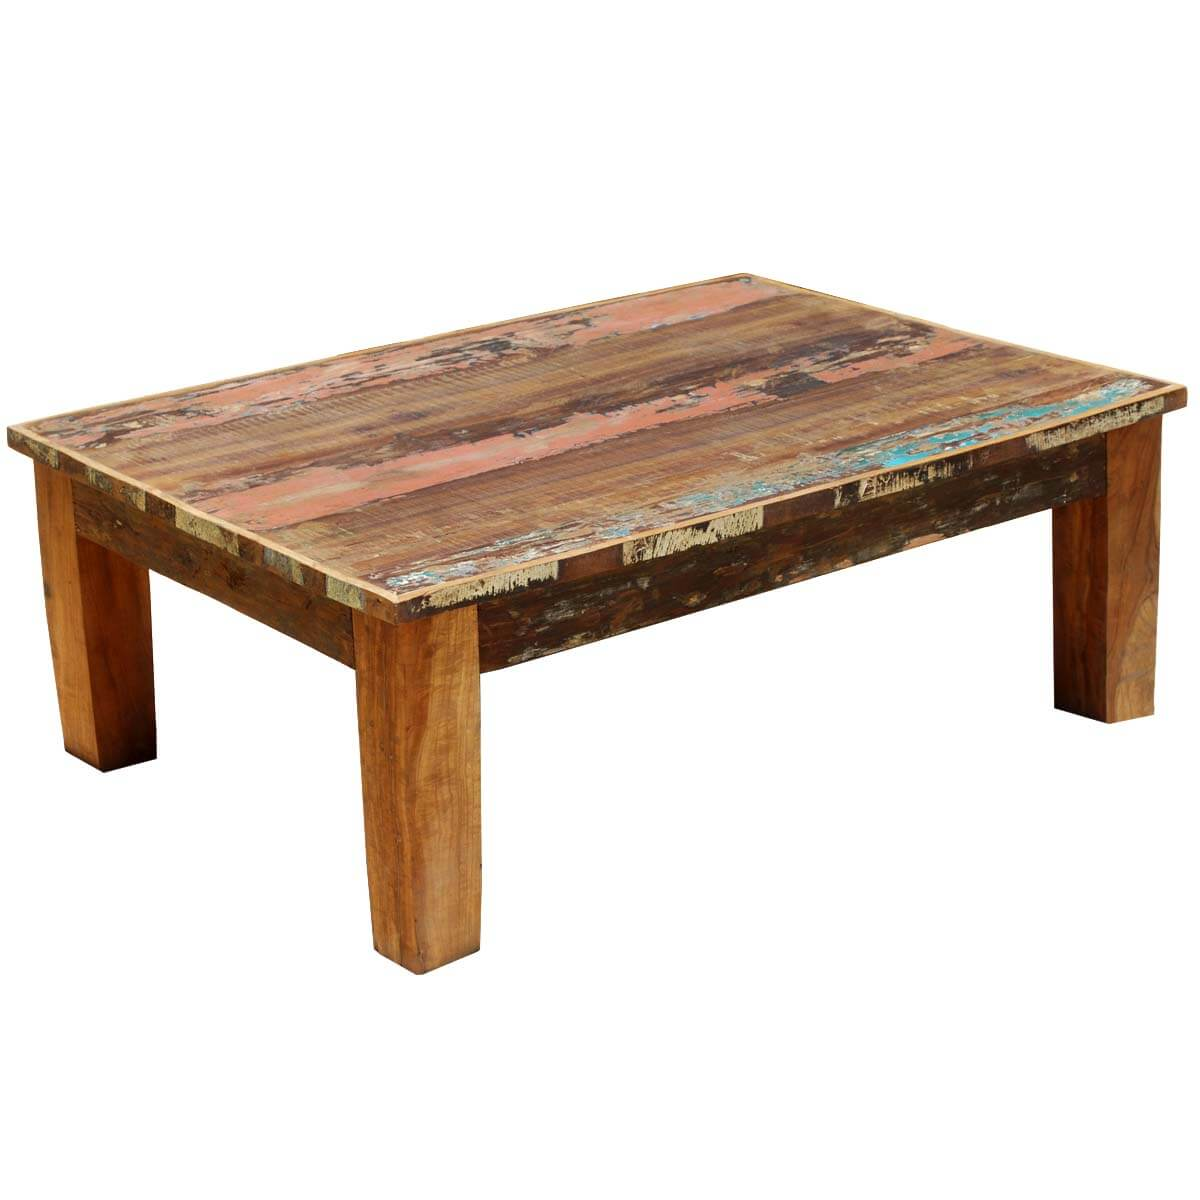 Appalachian rustic mixed reclaimed wood coffee table Coffee tables rustic